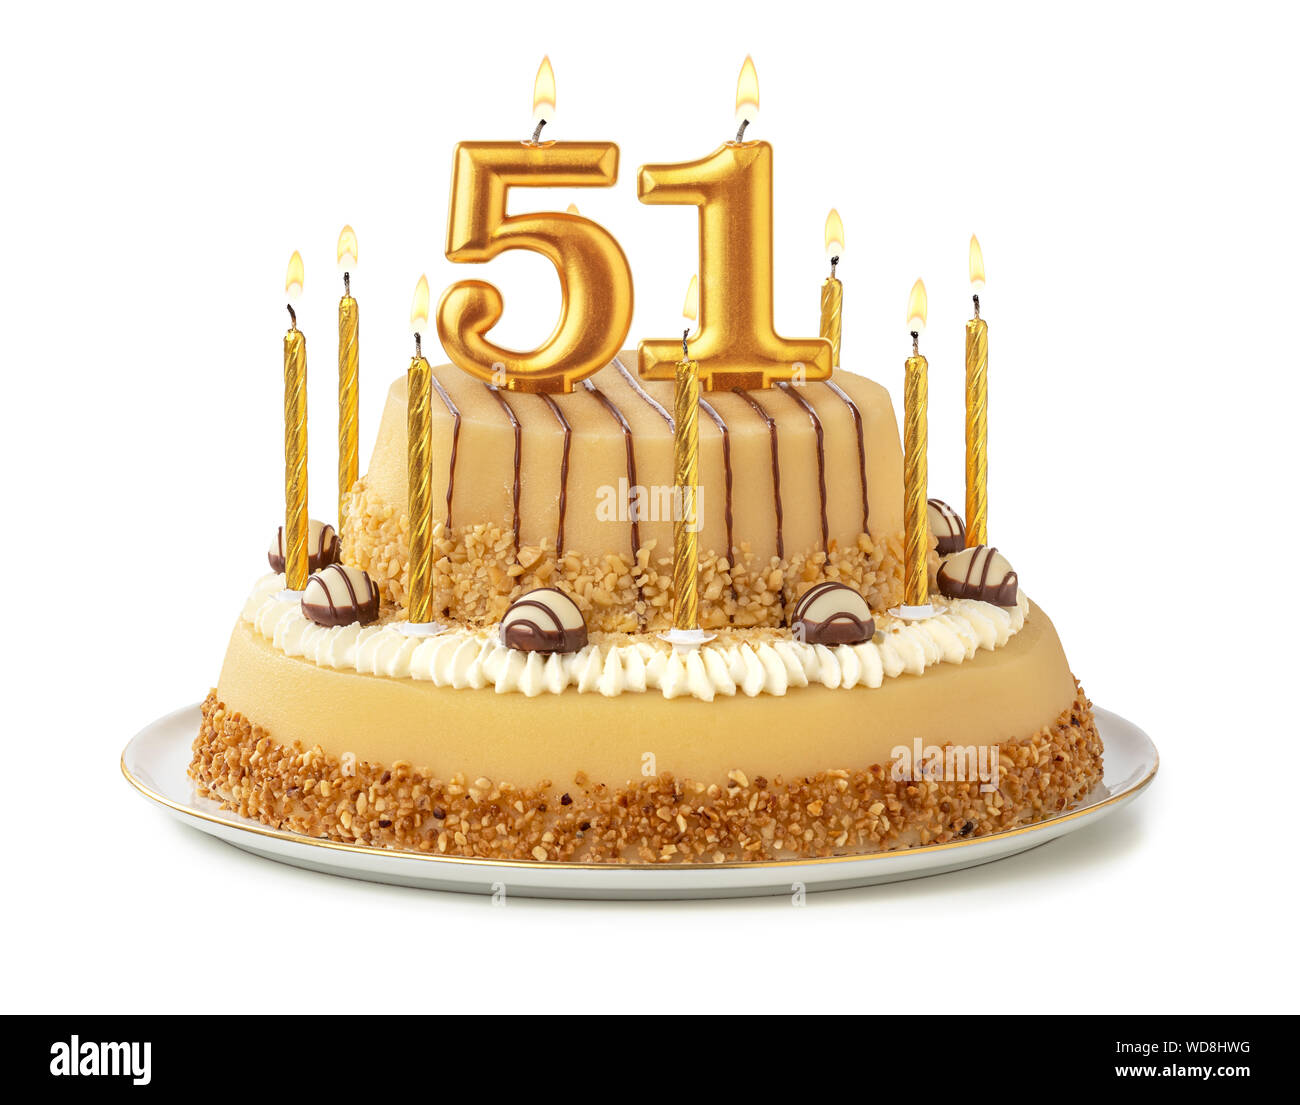 Astounding Festive Cake With Golden Candles Number 51 Stock Photo Personalised Birthday Cards Epsylily Jamesorg